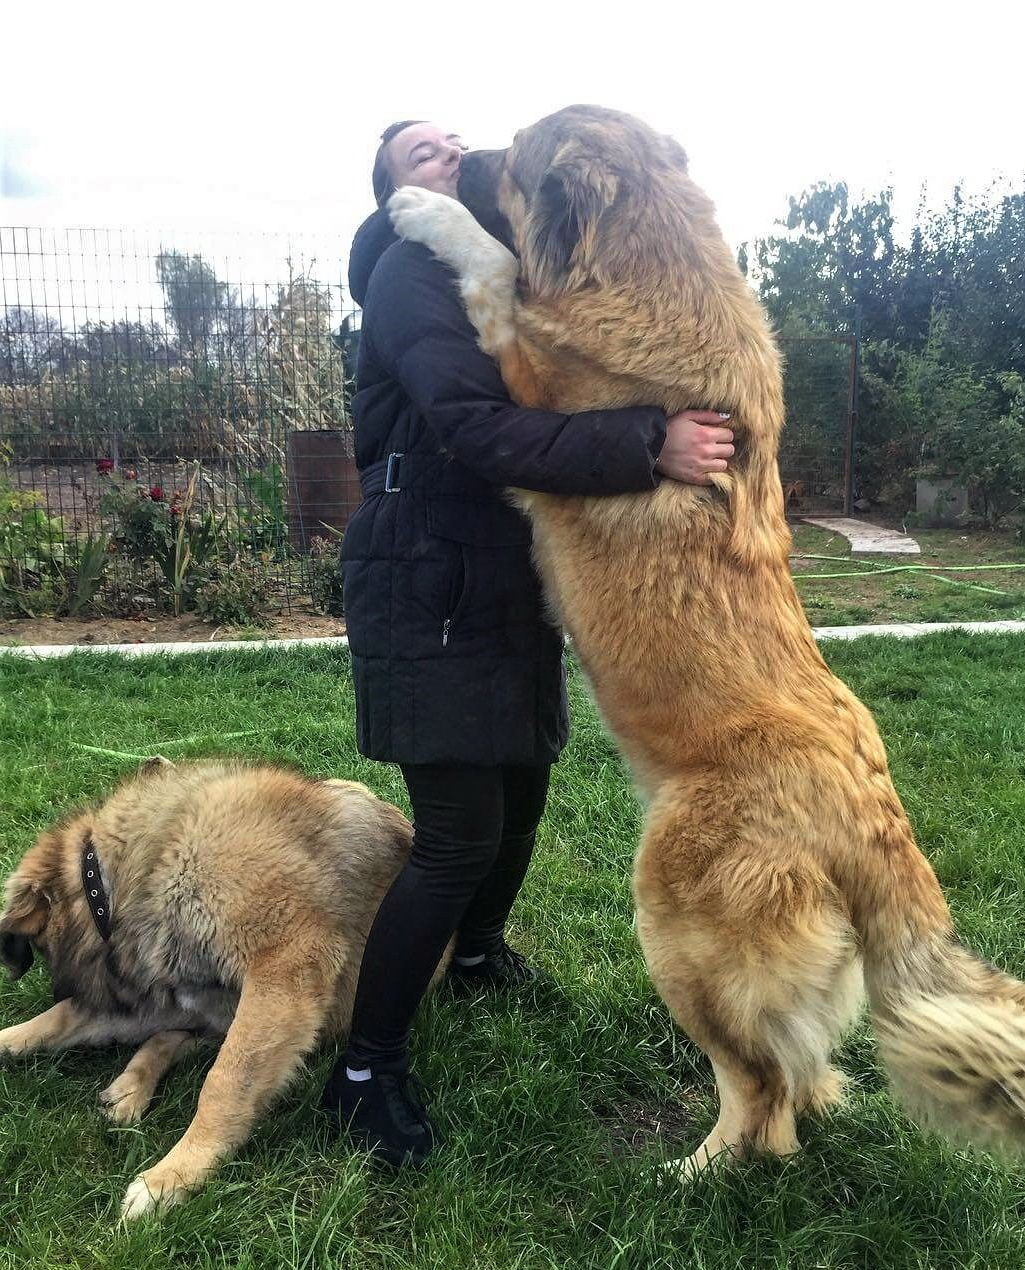 Caucasian Mountain Shepherd For Sale >> How Much Would Caucasian Mountain Dog Cost Puppy Price Dogs